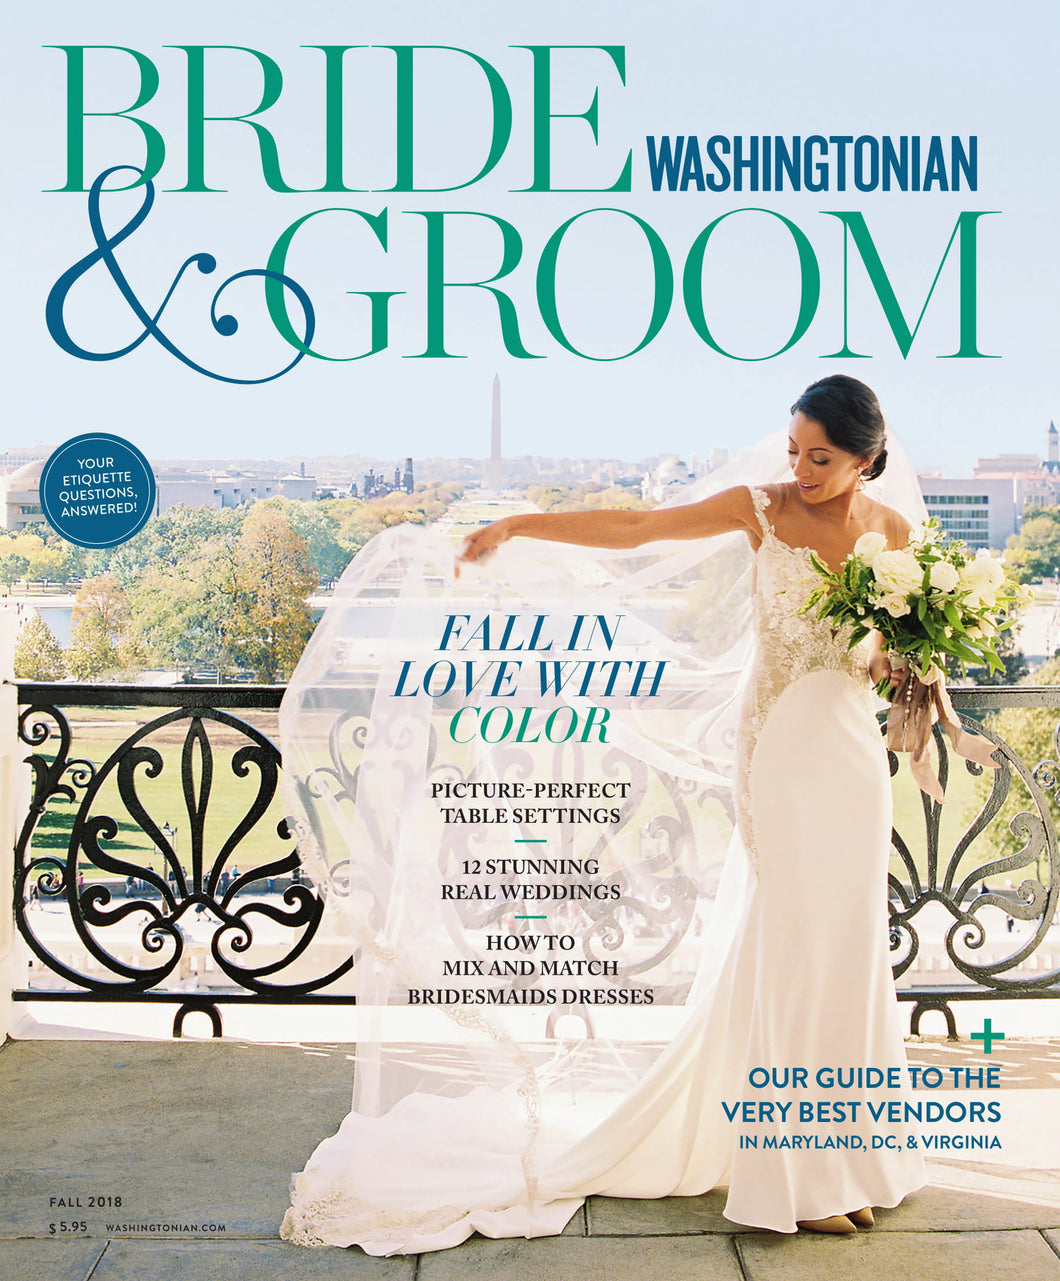 Bride & Groom: Fall 2018